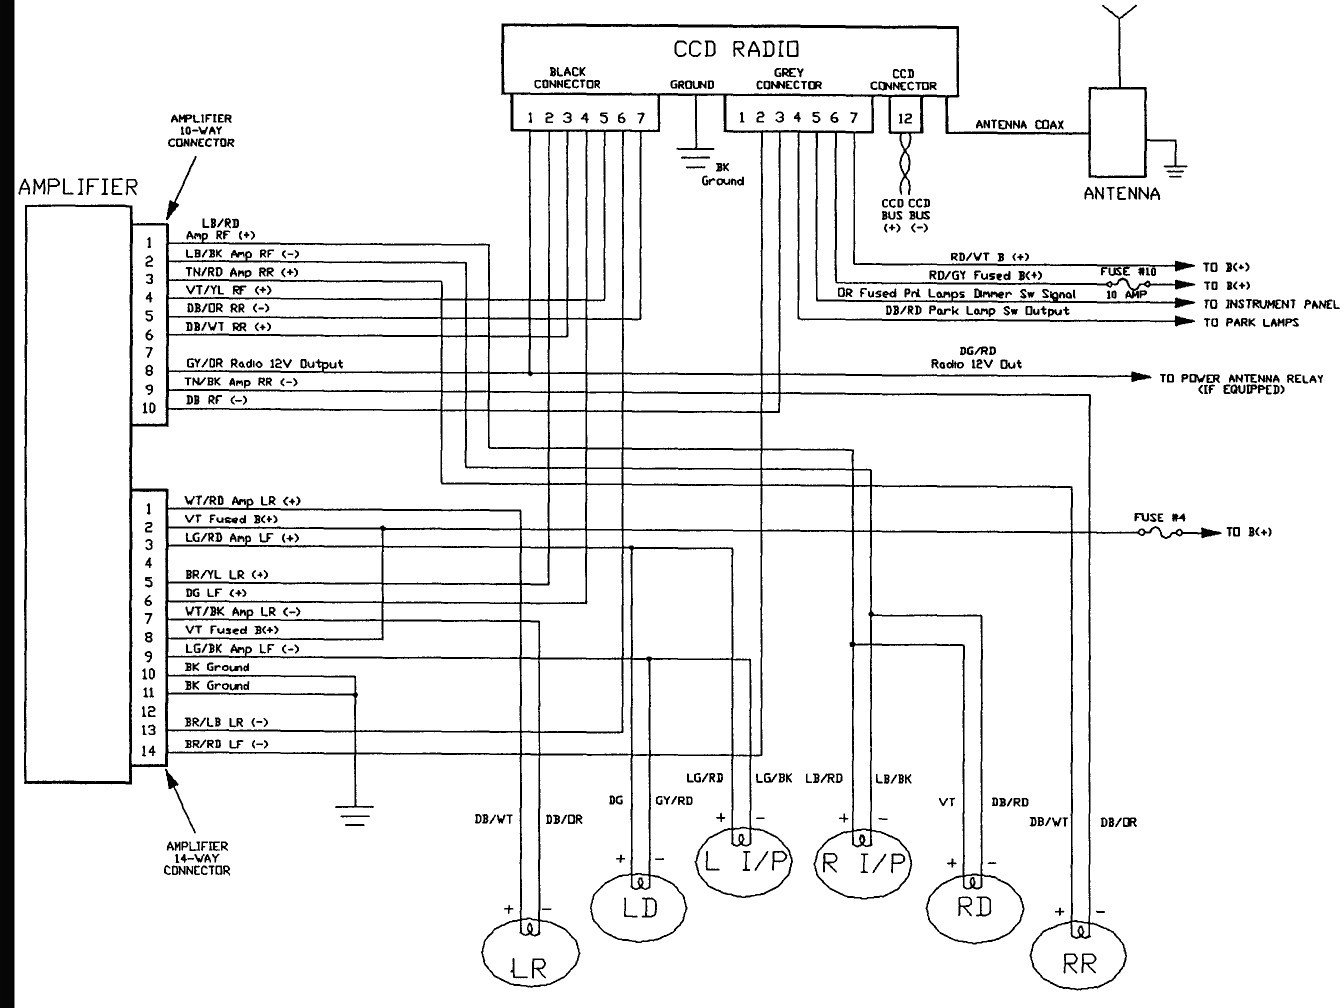 2015 Jeep Cherokee Wiring Diagram All Kind Of Wiring Diagrams \u2022 2014  Jeep Cherokee Trailhawk Wiring Diagram 2015 Jeep Cherokee Trailhawk Wiring  Diagram